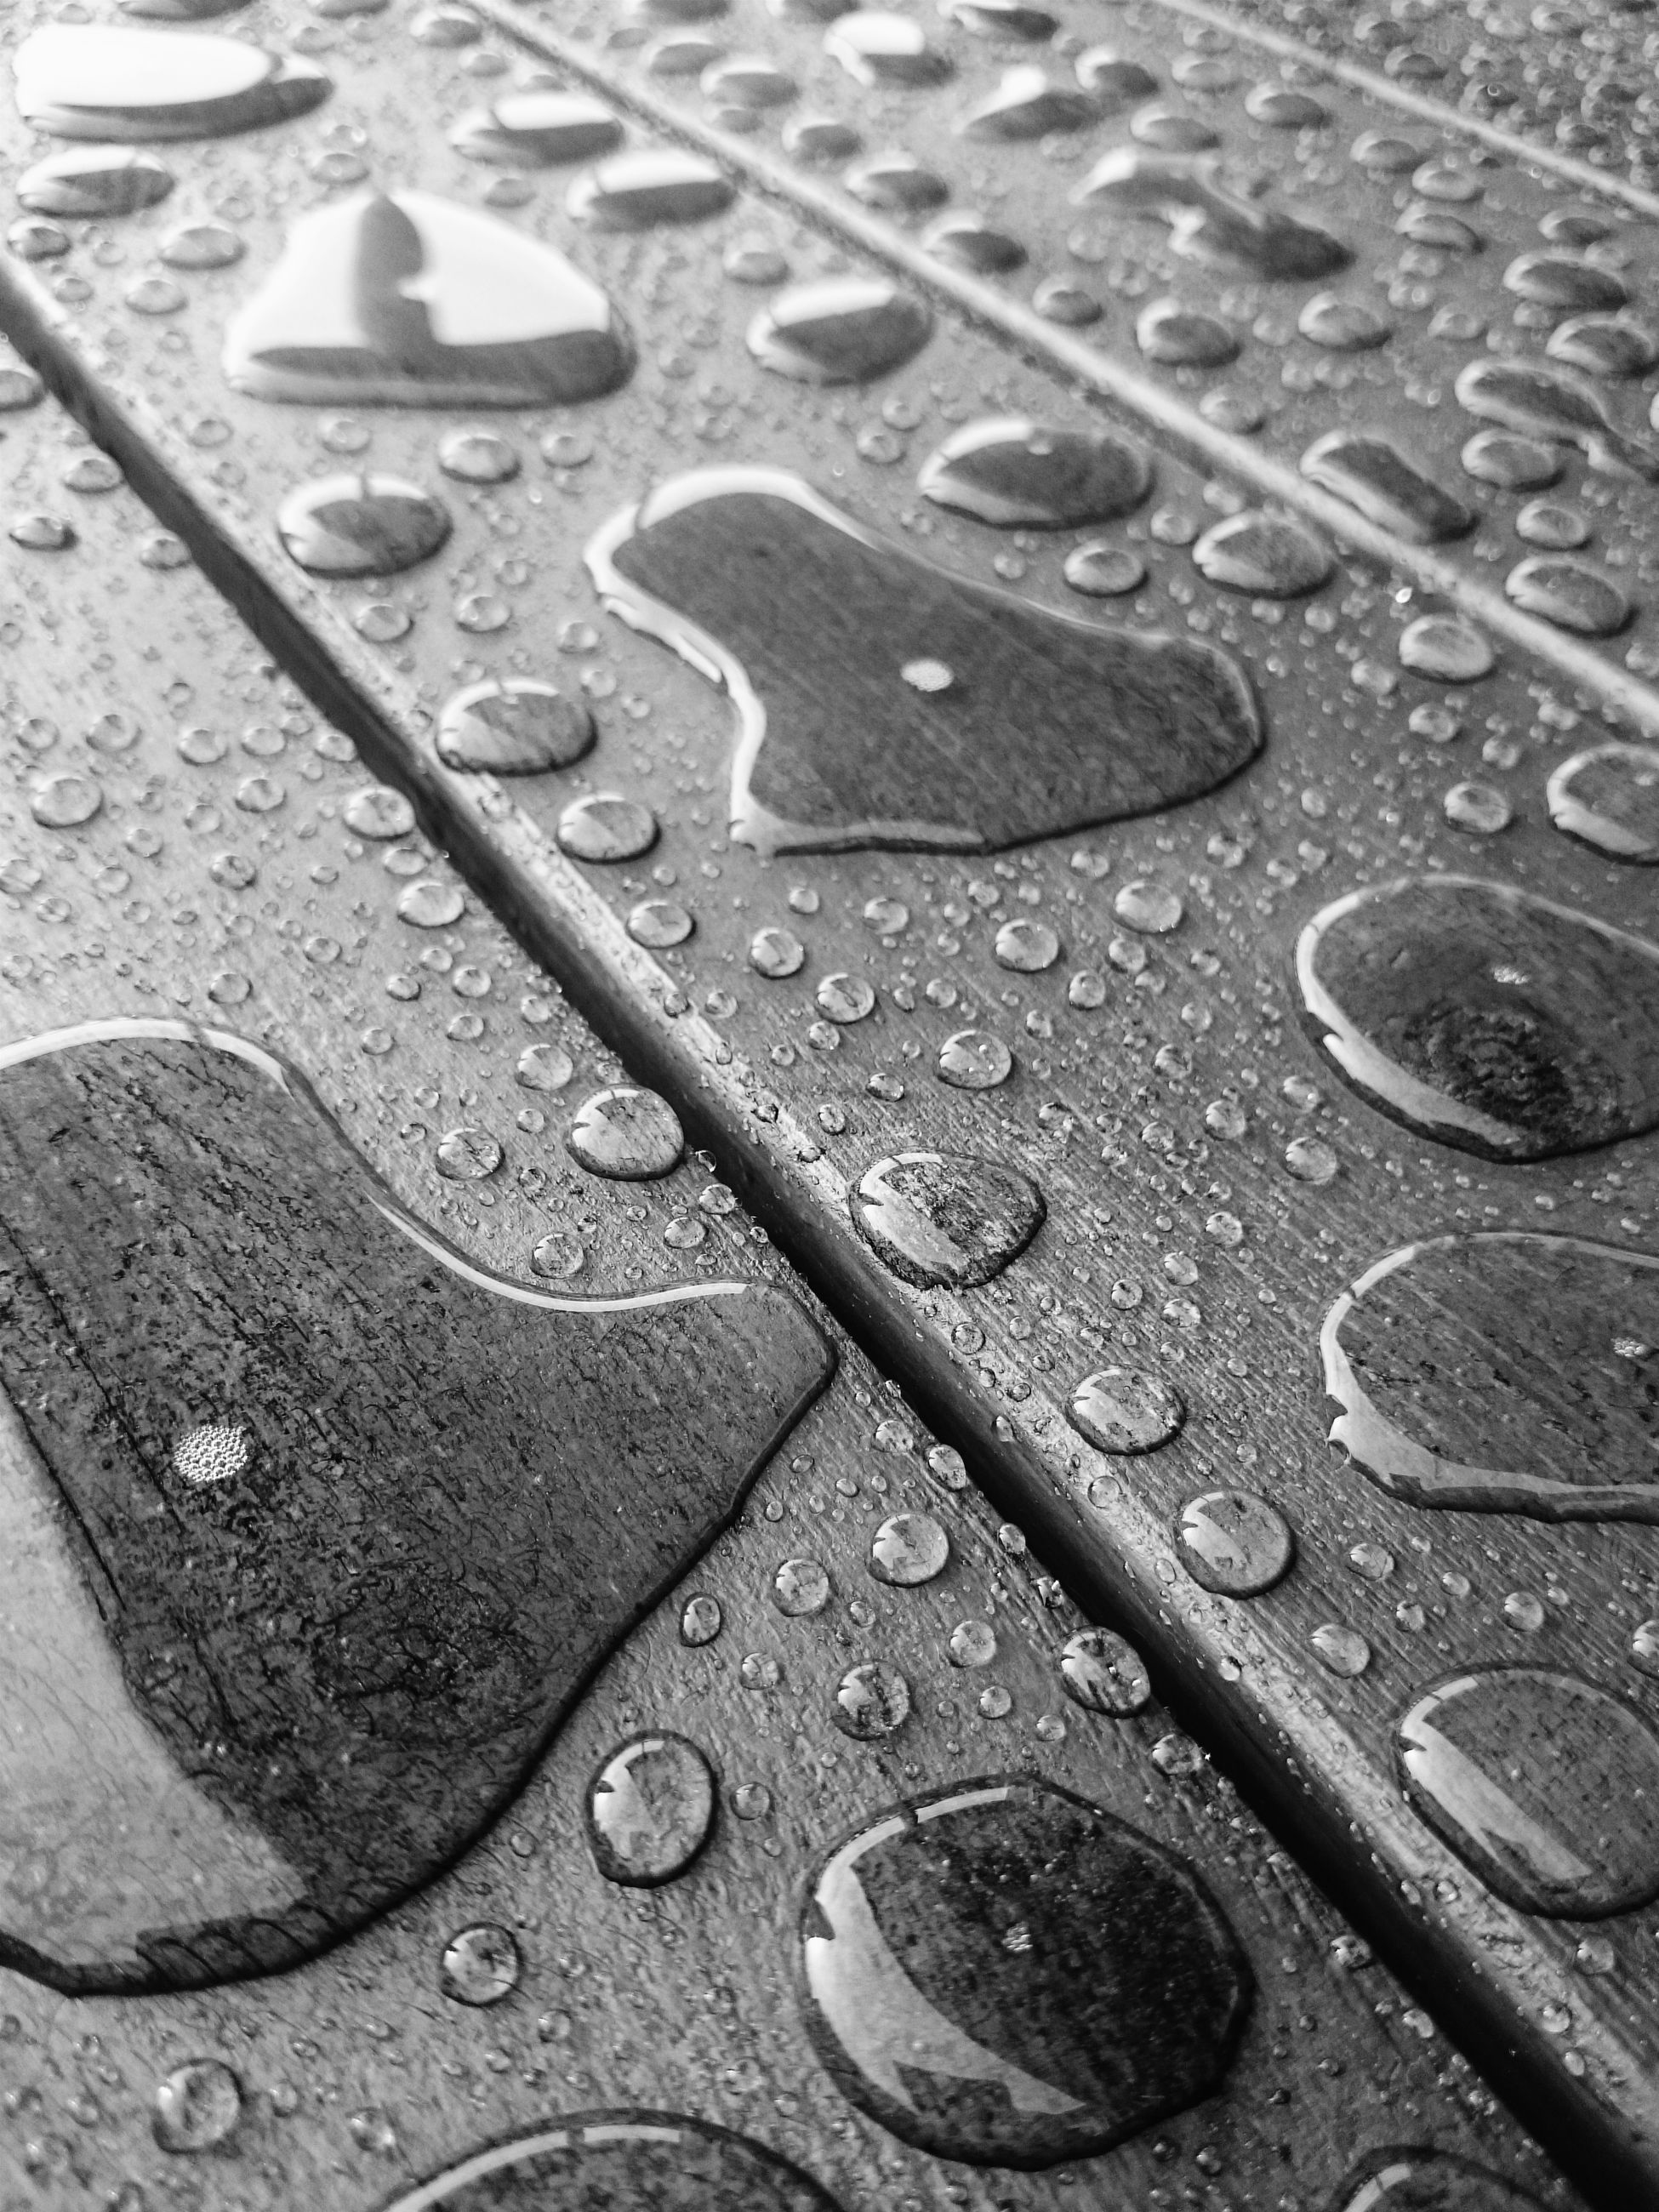 metal, full frame, backgrounds, high angle view, metallic, wet, close-up, water, pattern, street, no people, day, outdoors, textured, drop, transportation, detail, old, part of, rusty